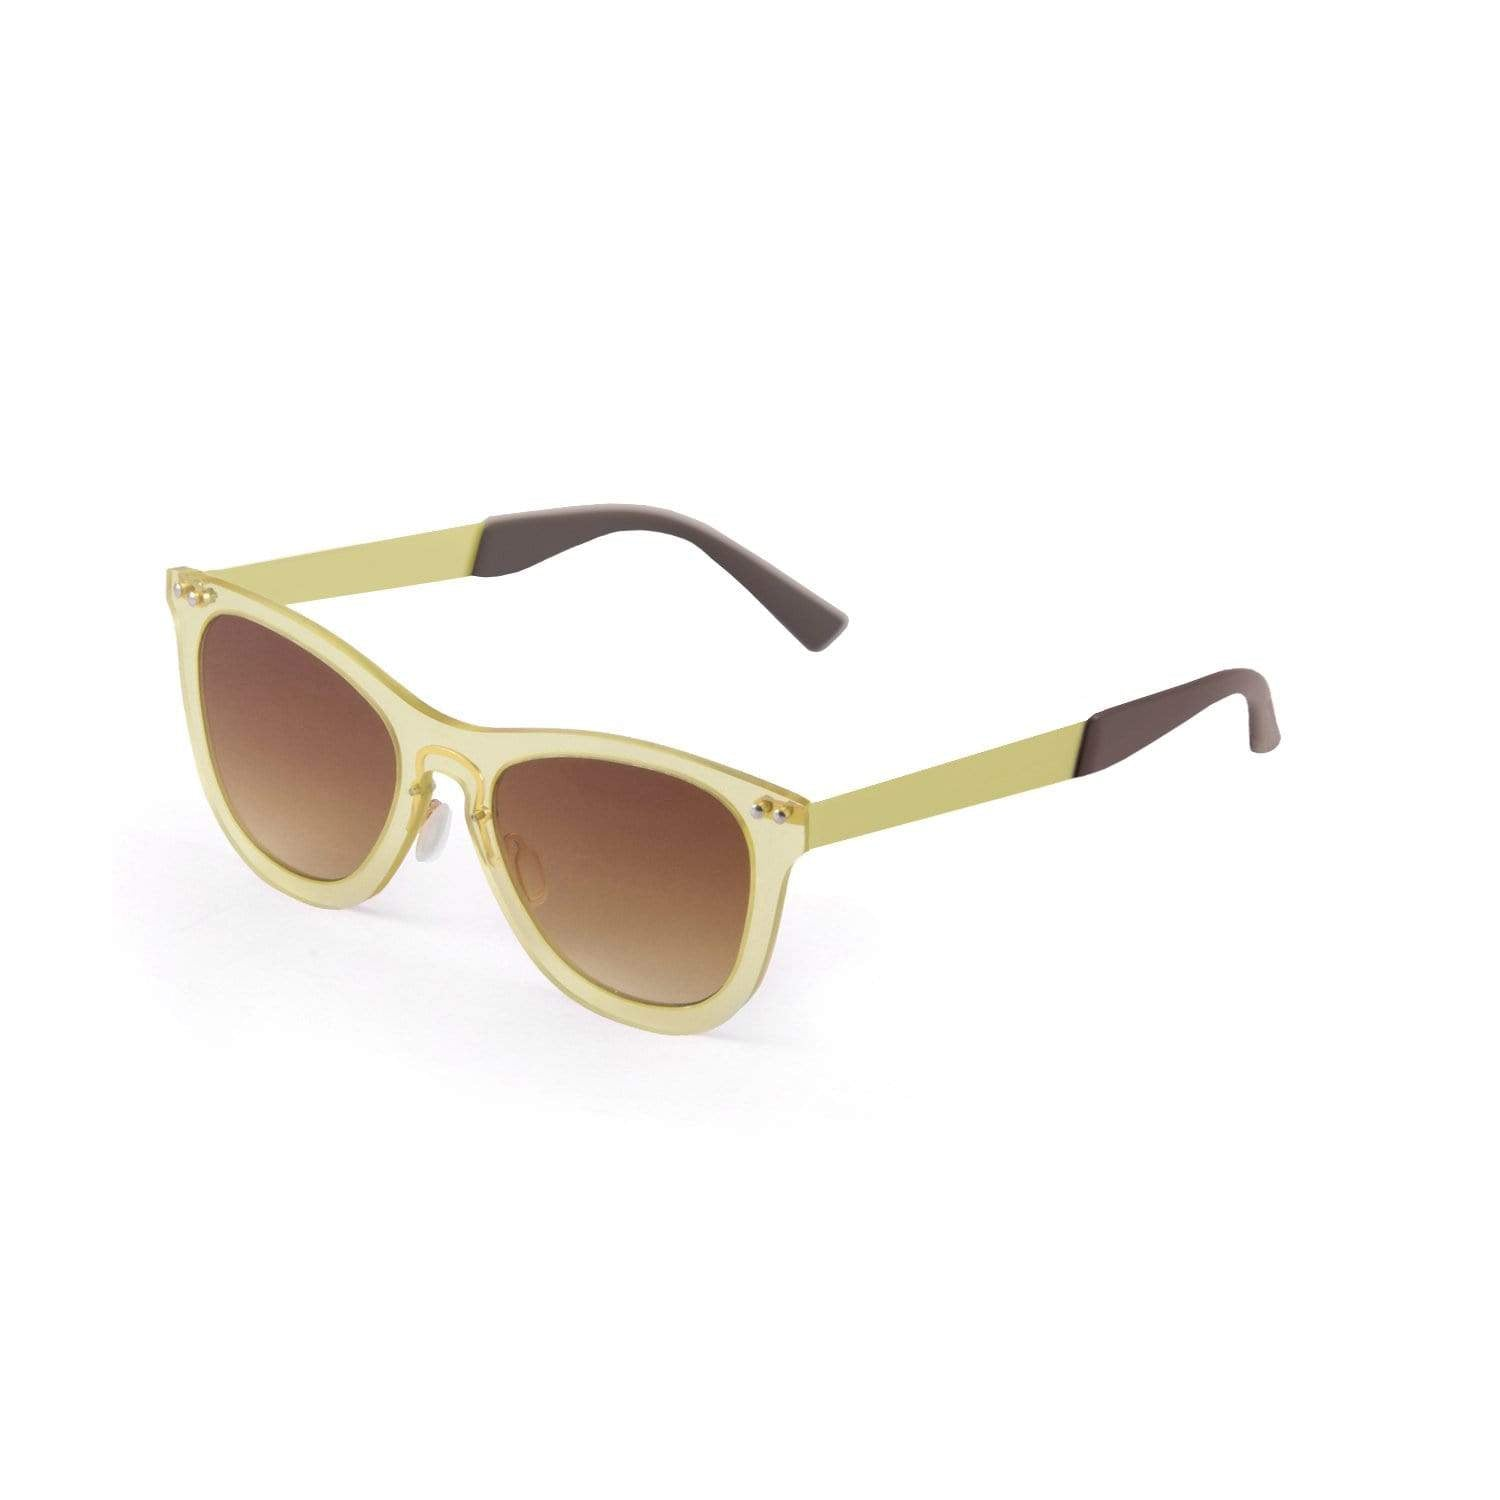 Ocean Sunglasses Accessories Sunglasses yellow-2 / NOSIZE Ocean Sunglasses - FLORENCIA